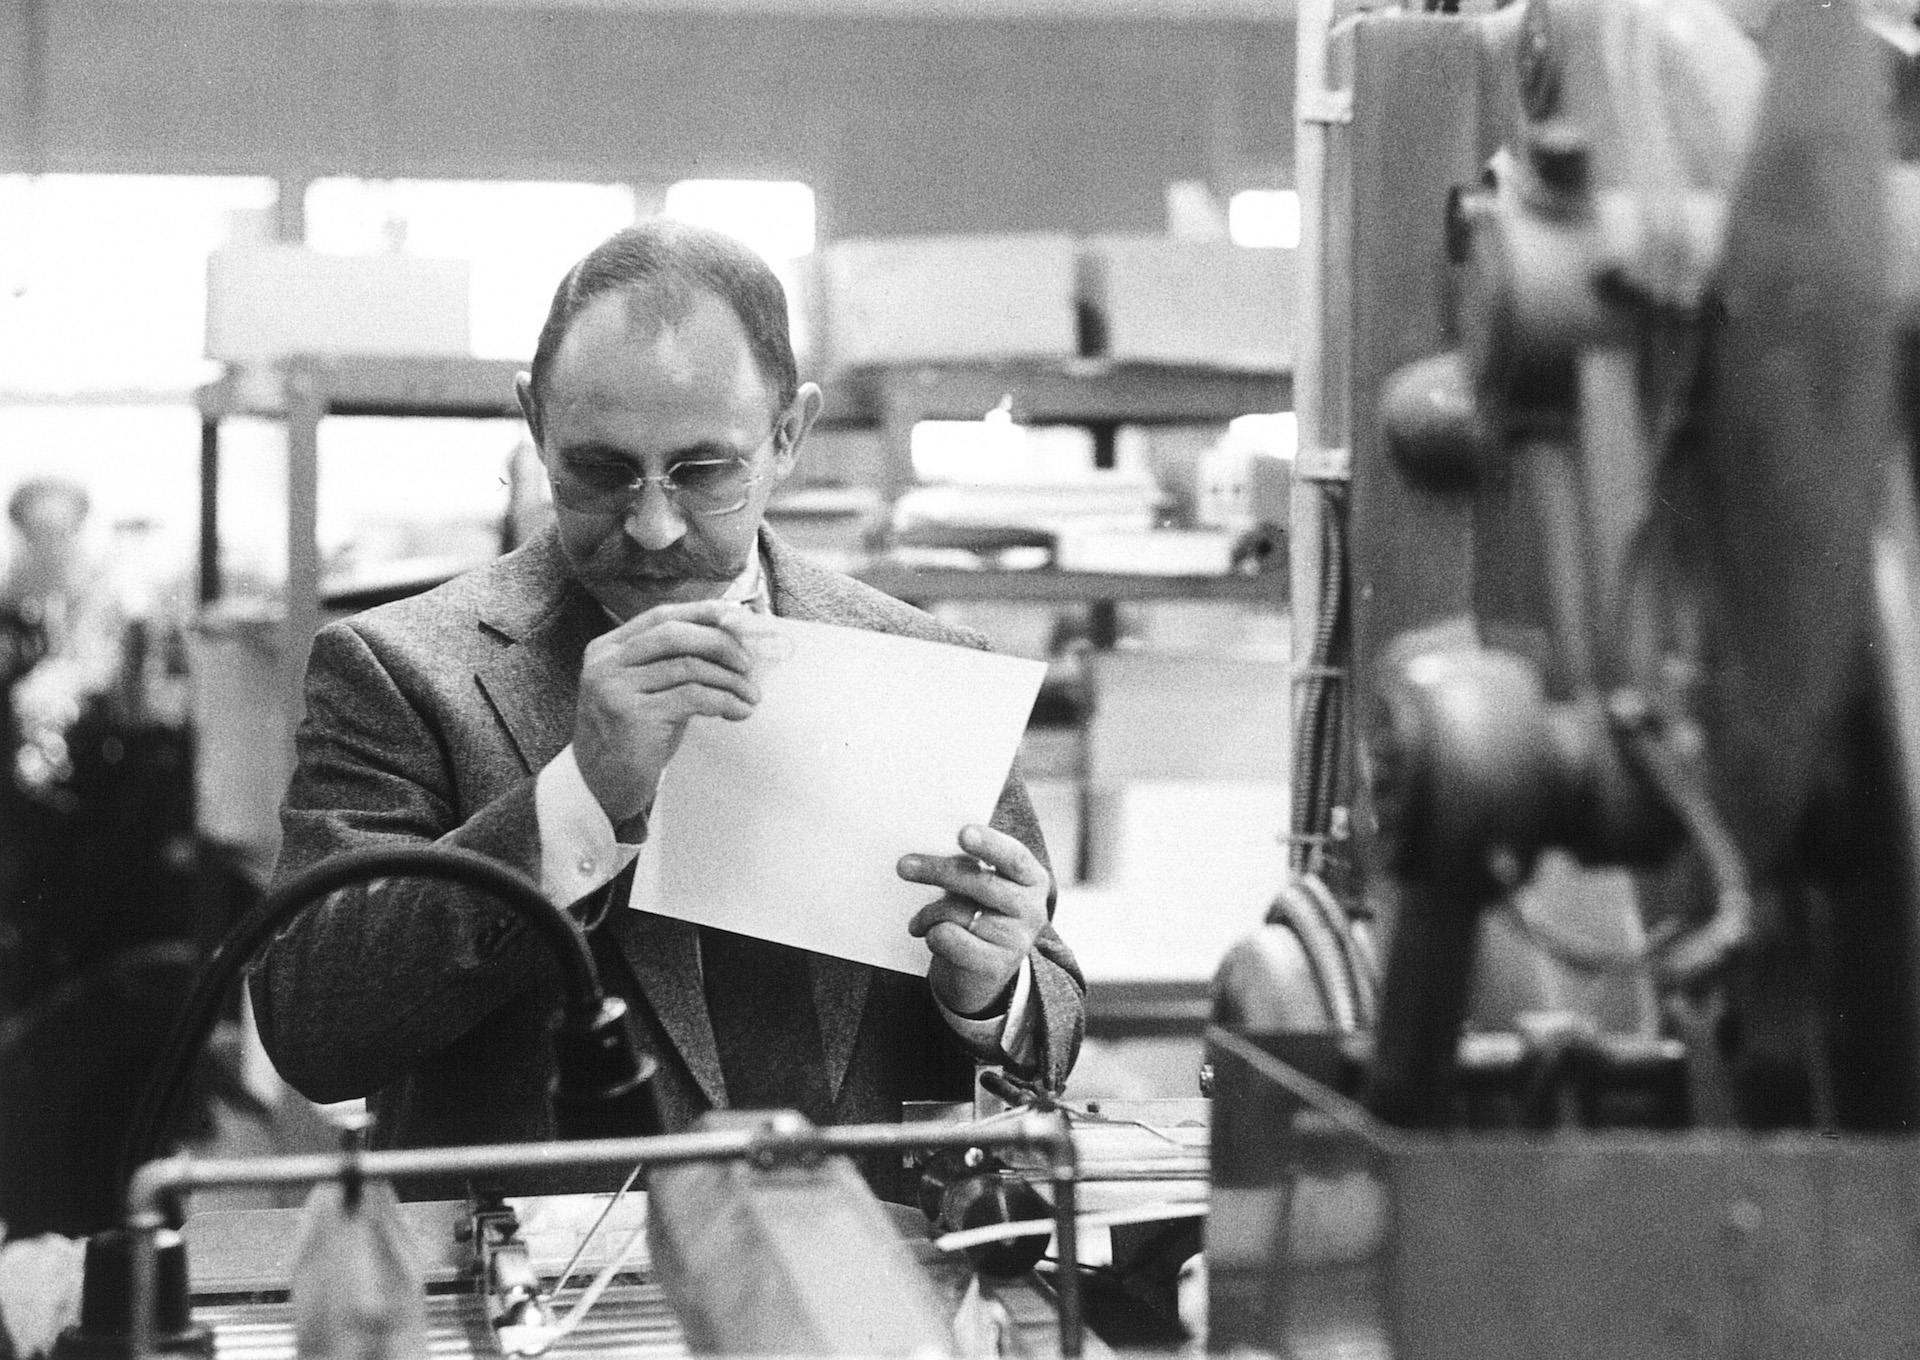 Karlheinz C. Bölling, the founder of the company, checking a printed sheet